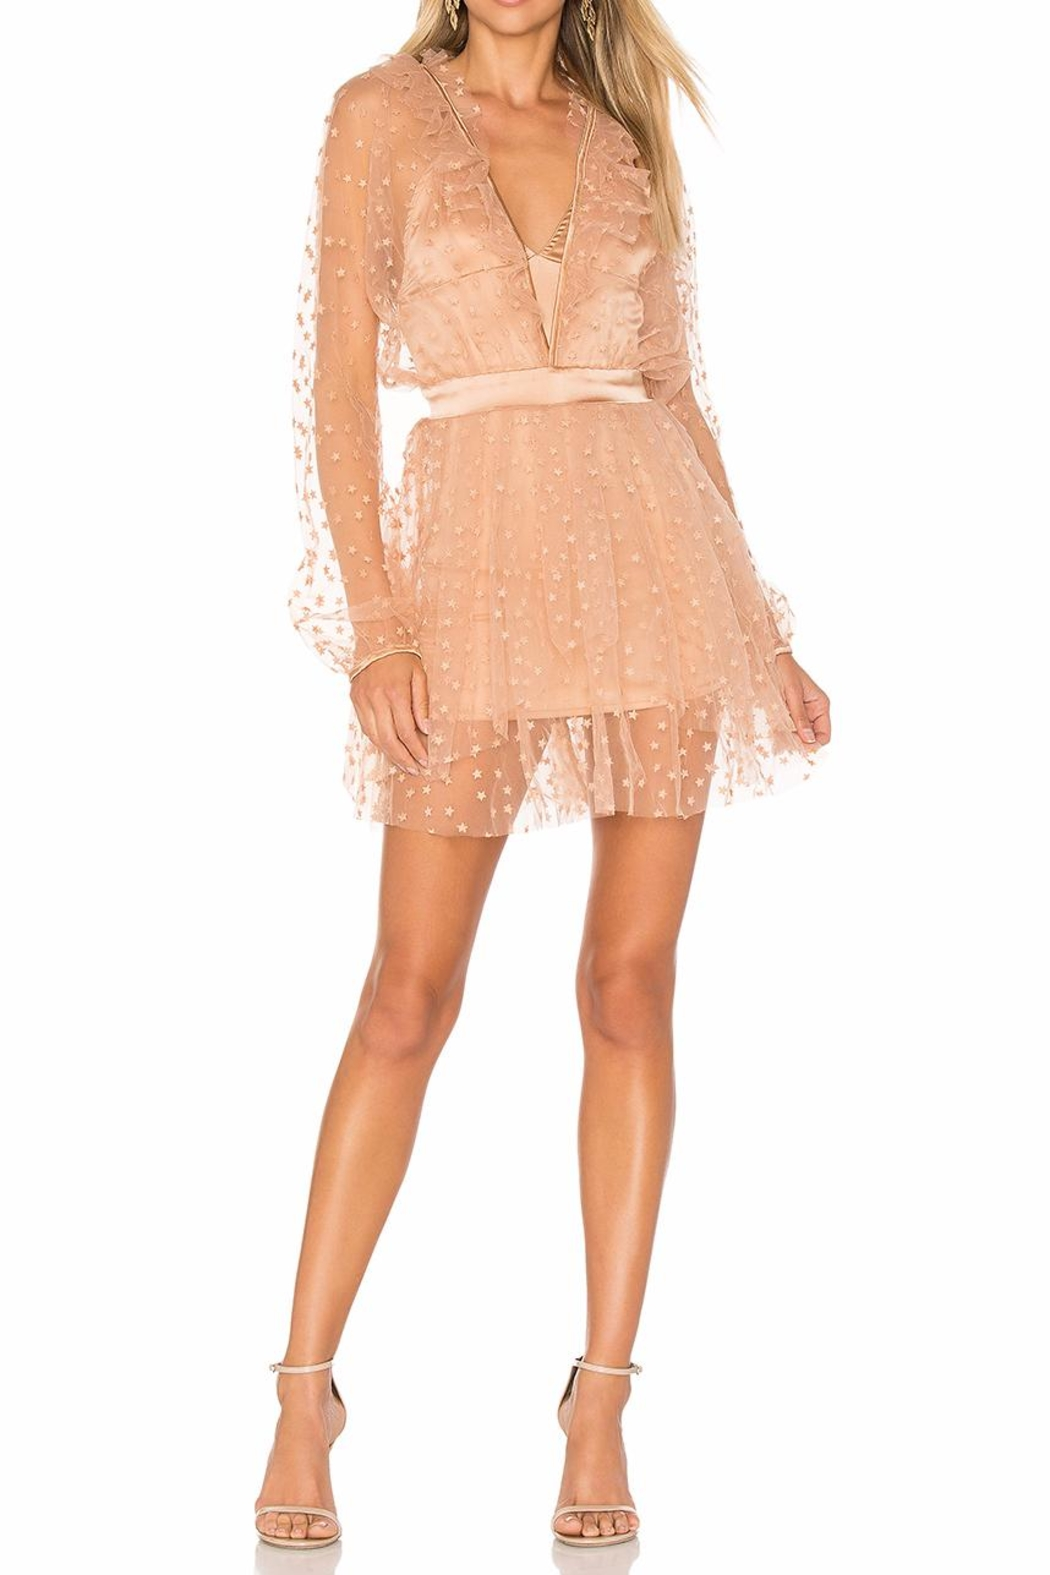 FOR LOVE & LEMONS All That Glitters Dress - Main Image